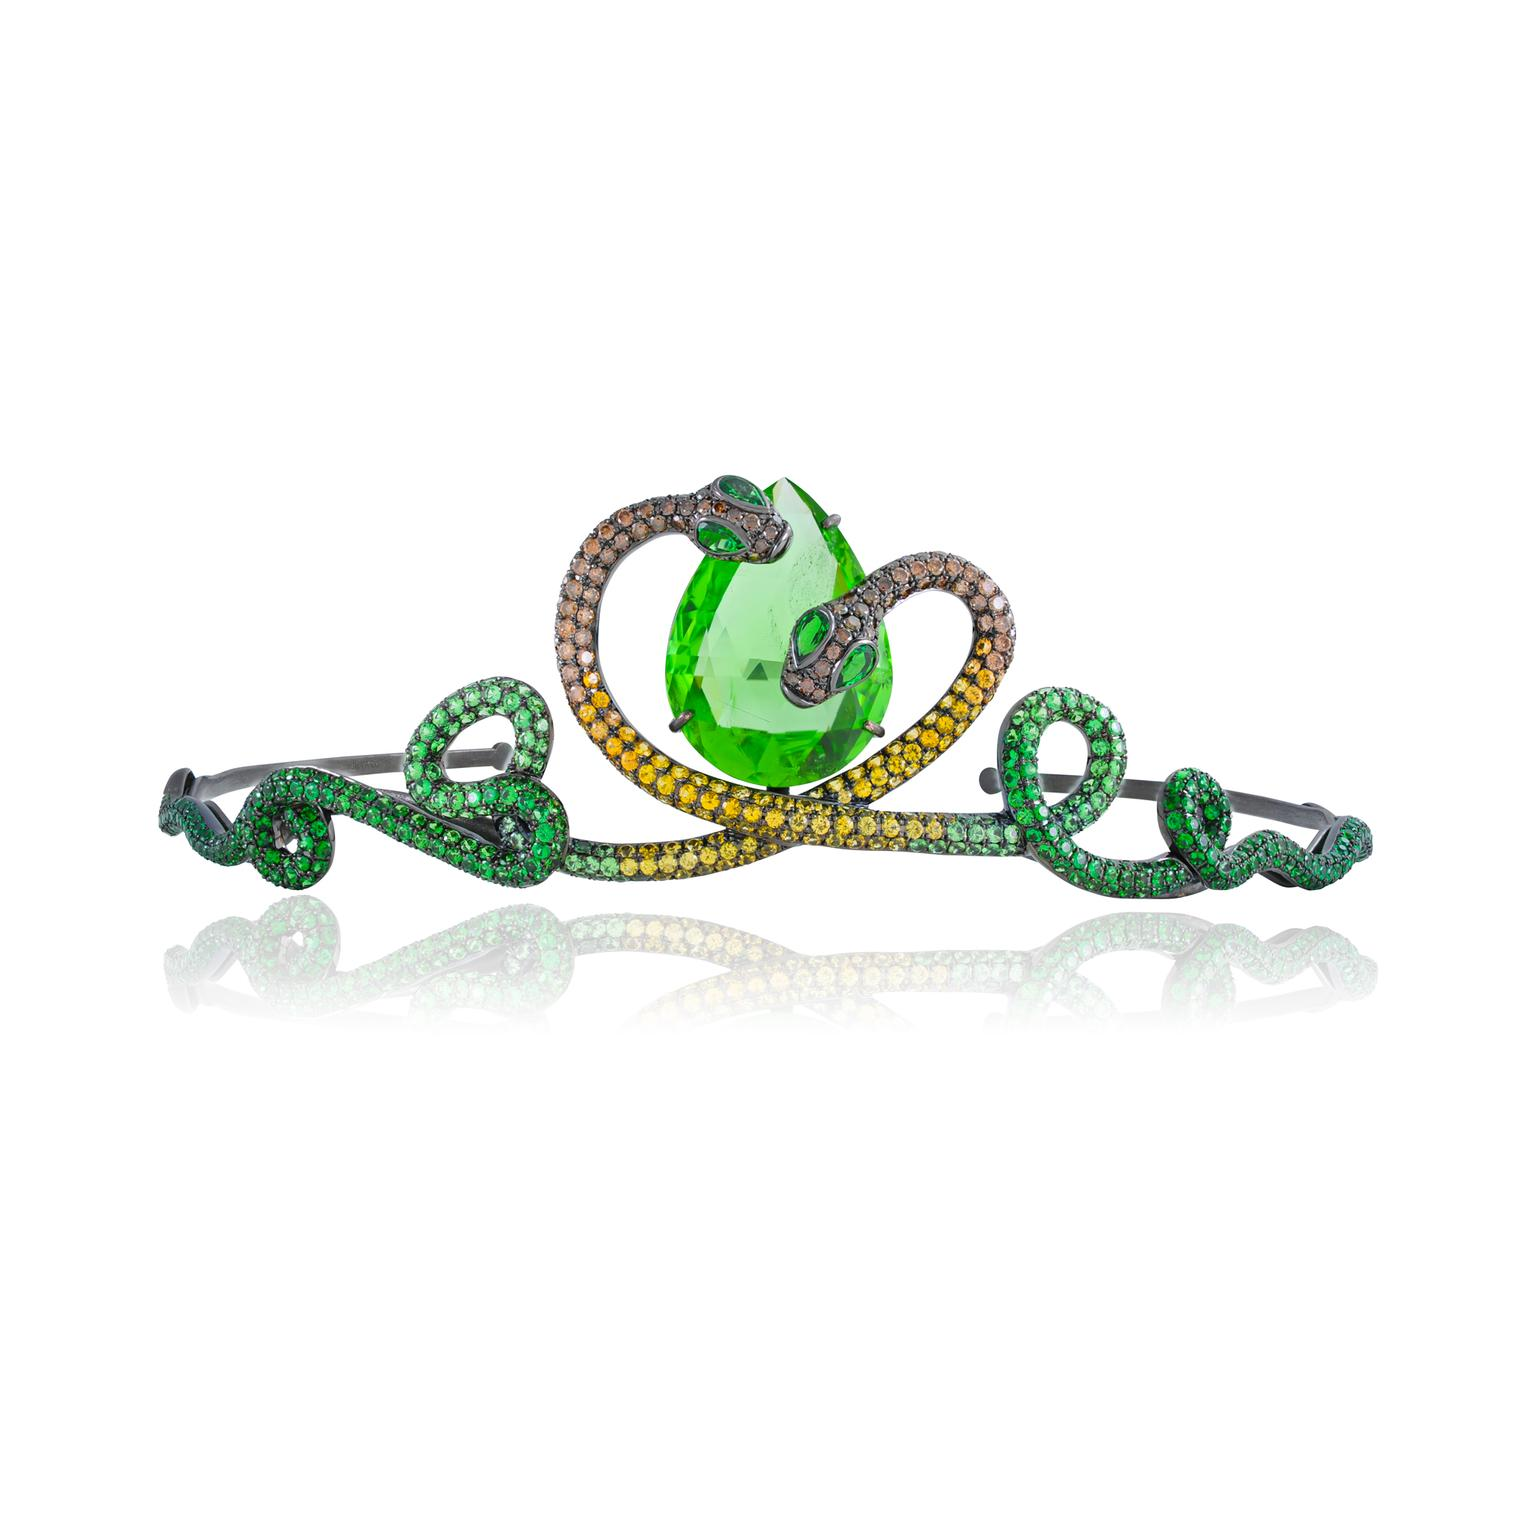 Lydia Courteille Queen of Sheba peridot tiara